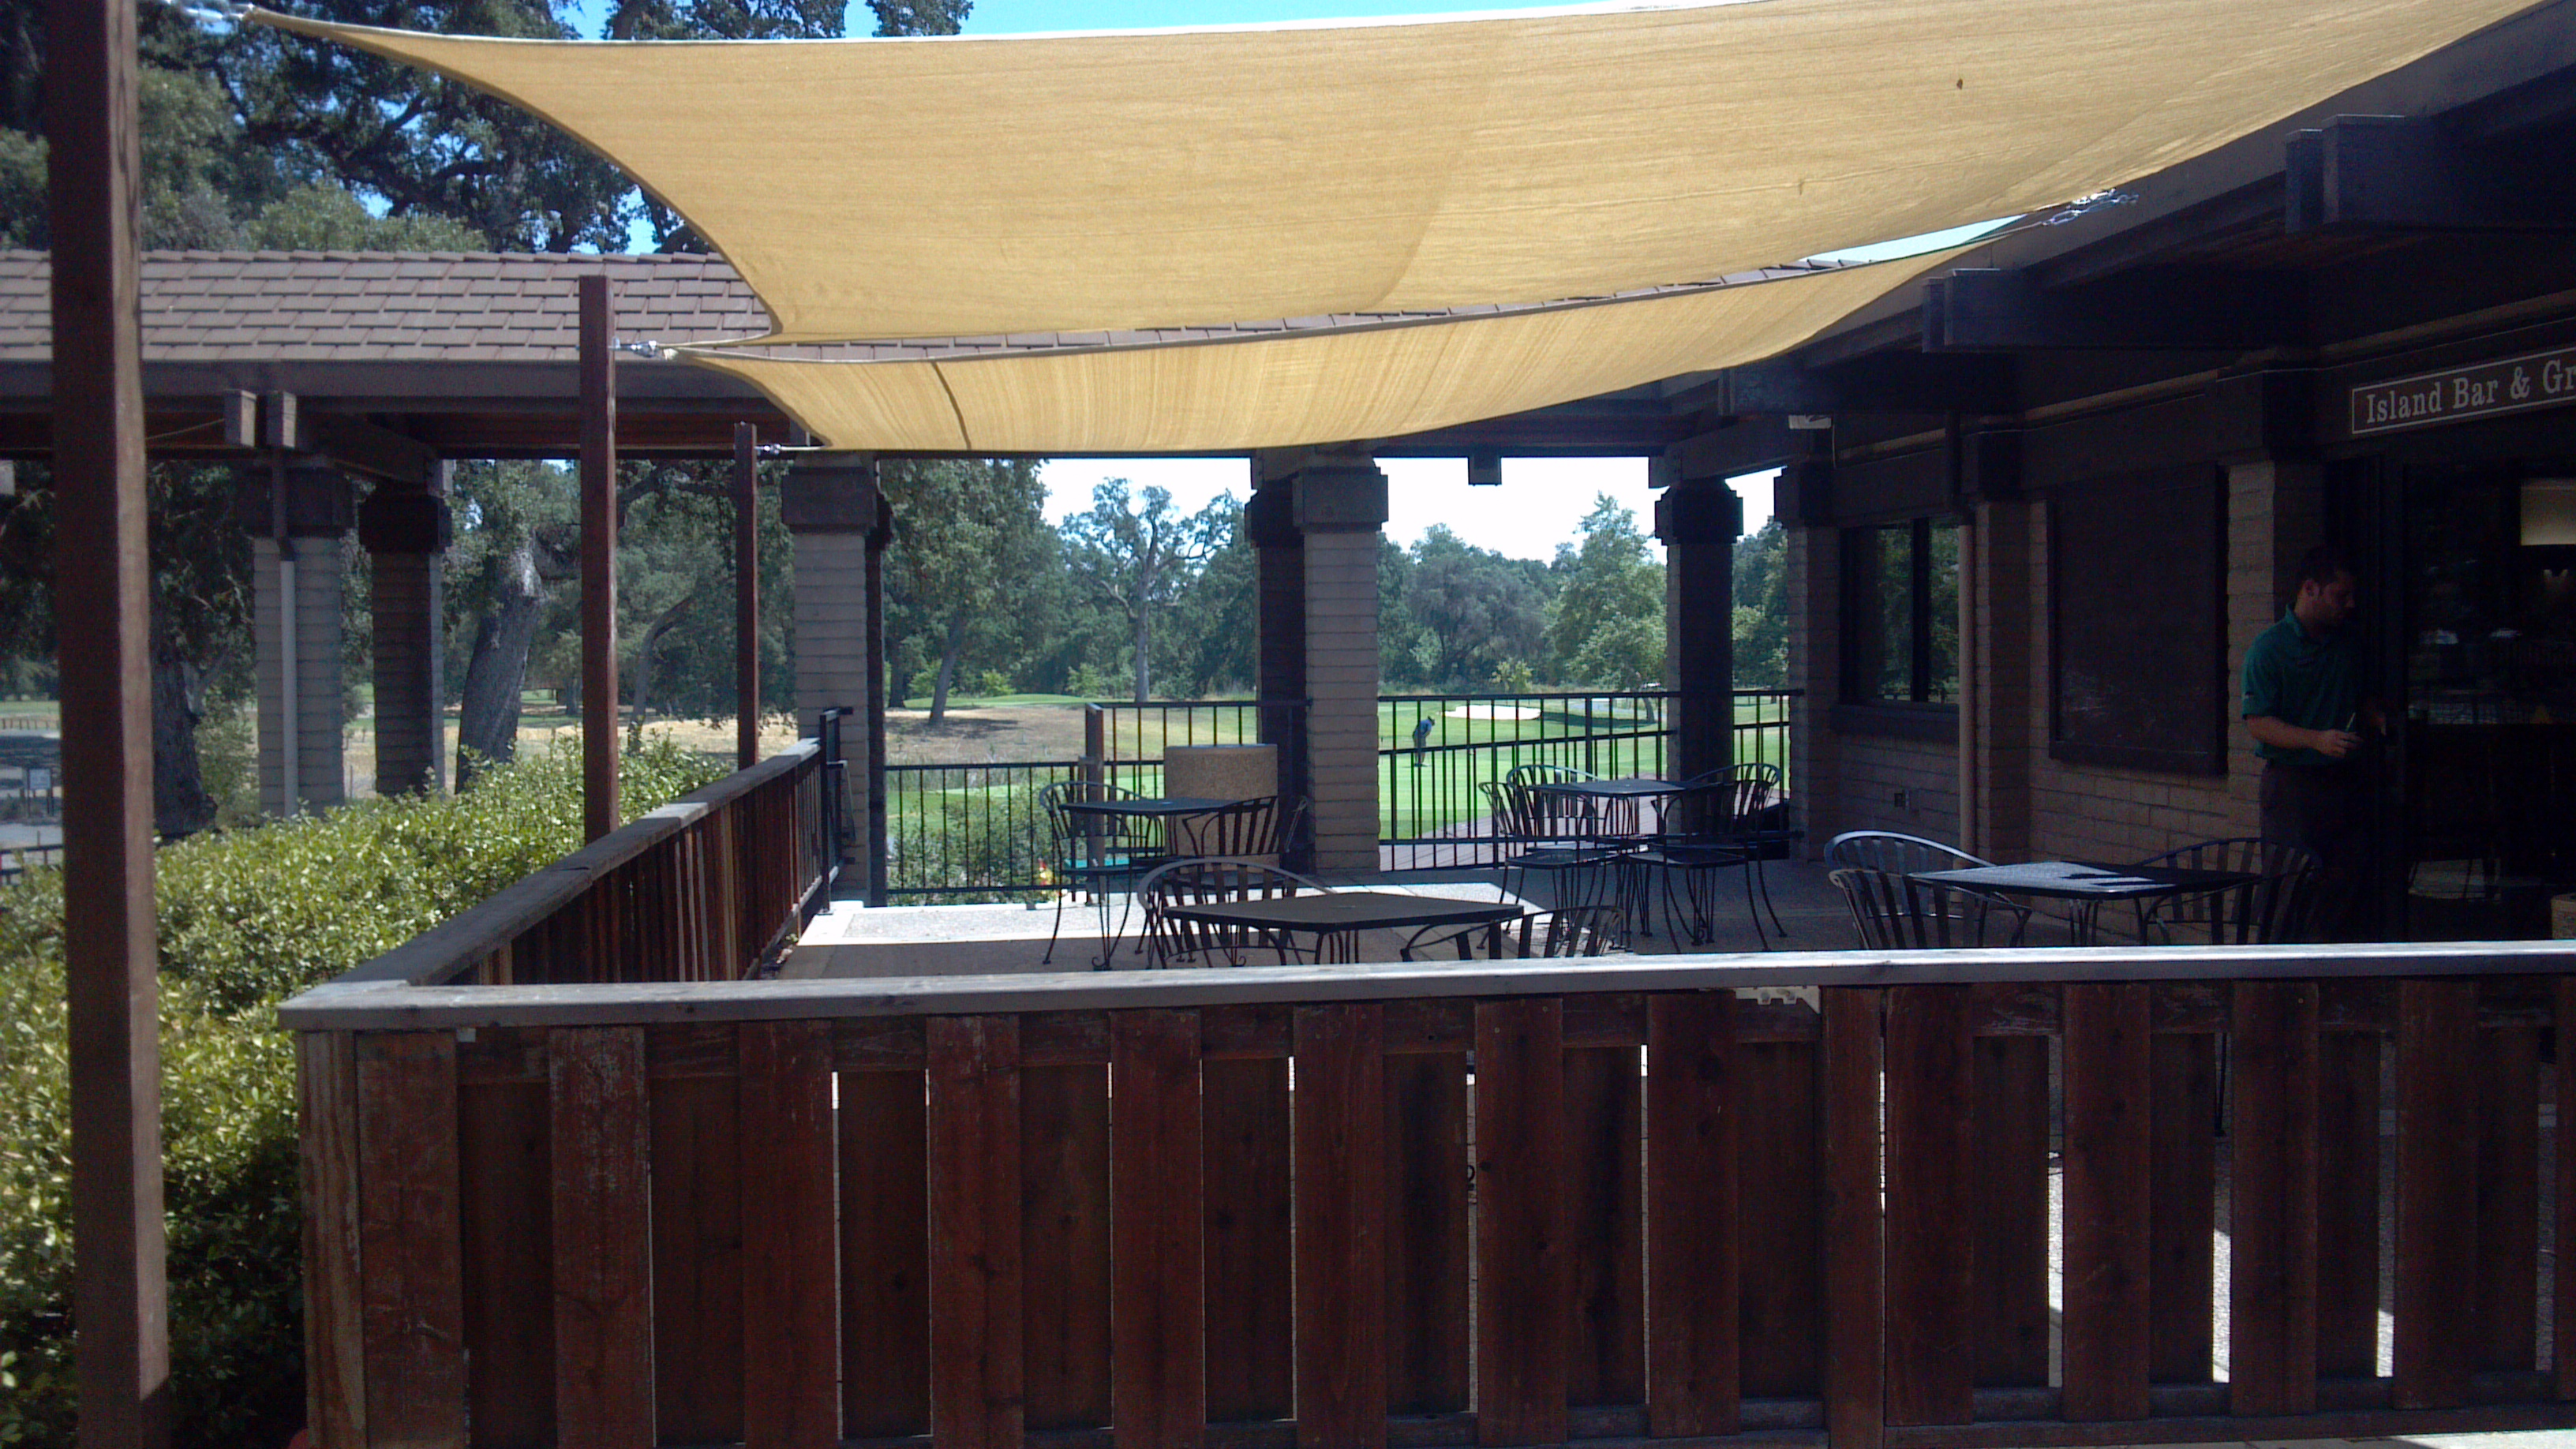 The island bar grill for Balcony grill and bar